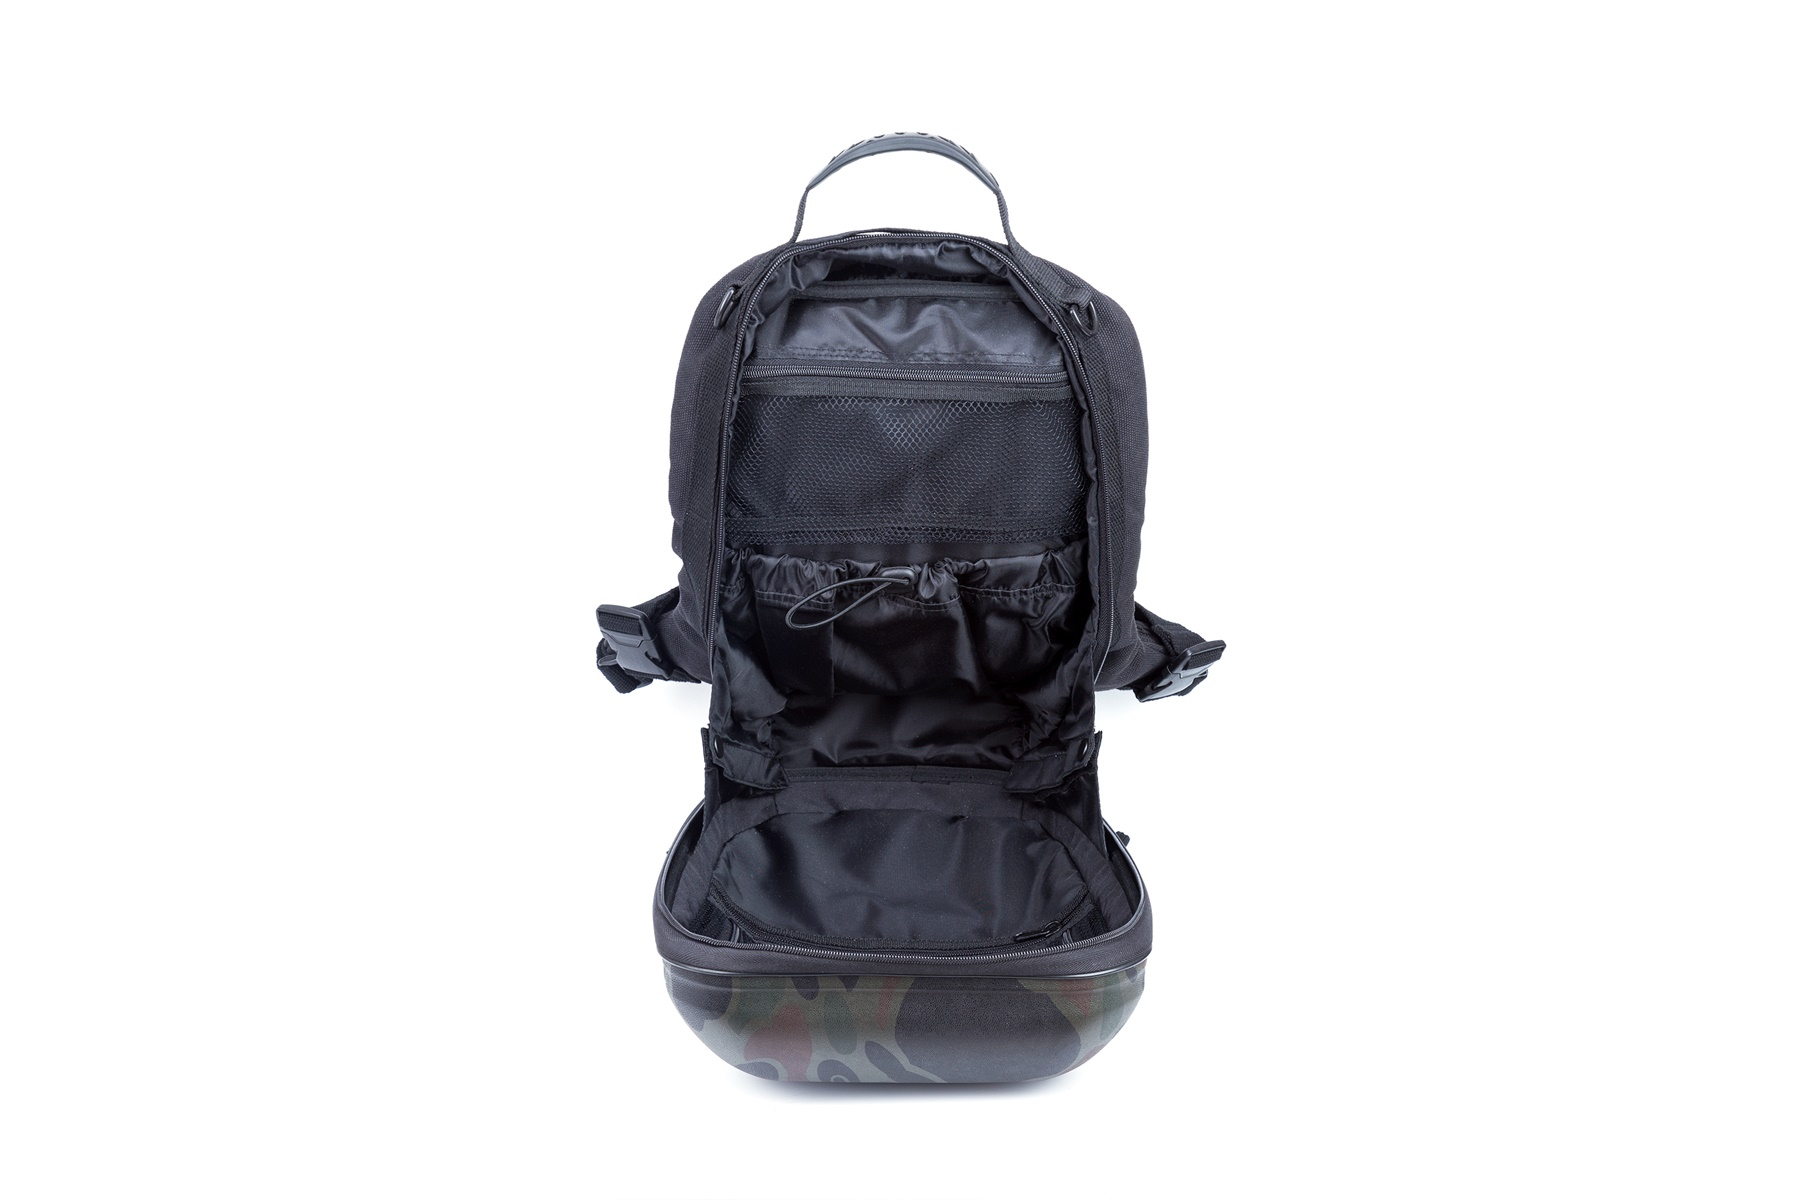 GF bags-Manufacturer Of Military Style Backpack And Bag Tactical - GF Bags-9